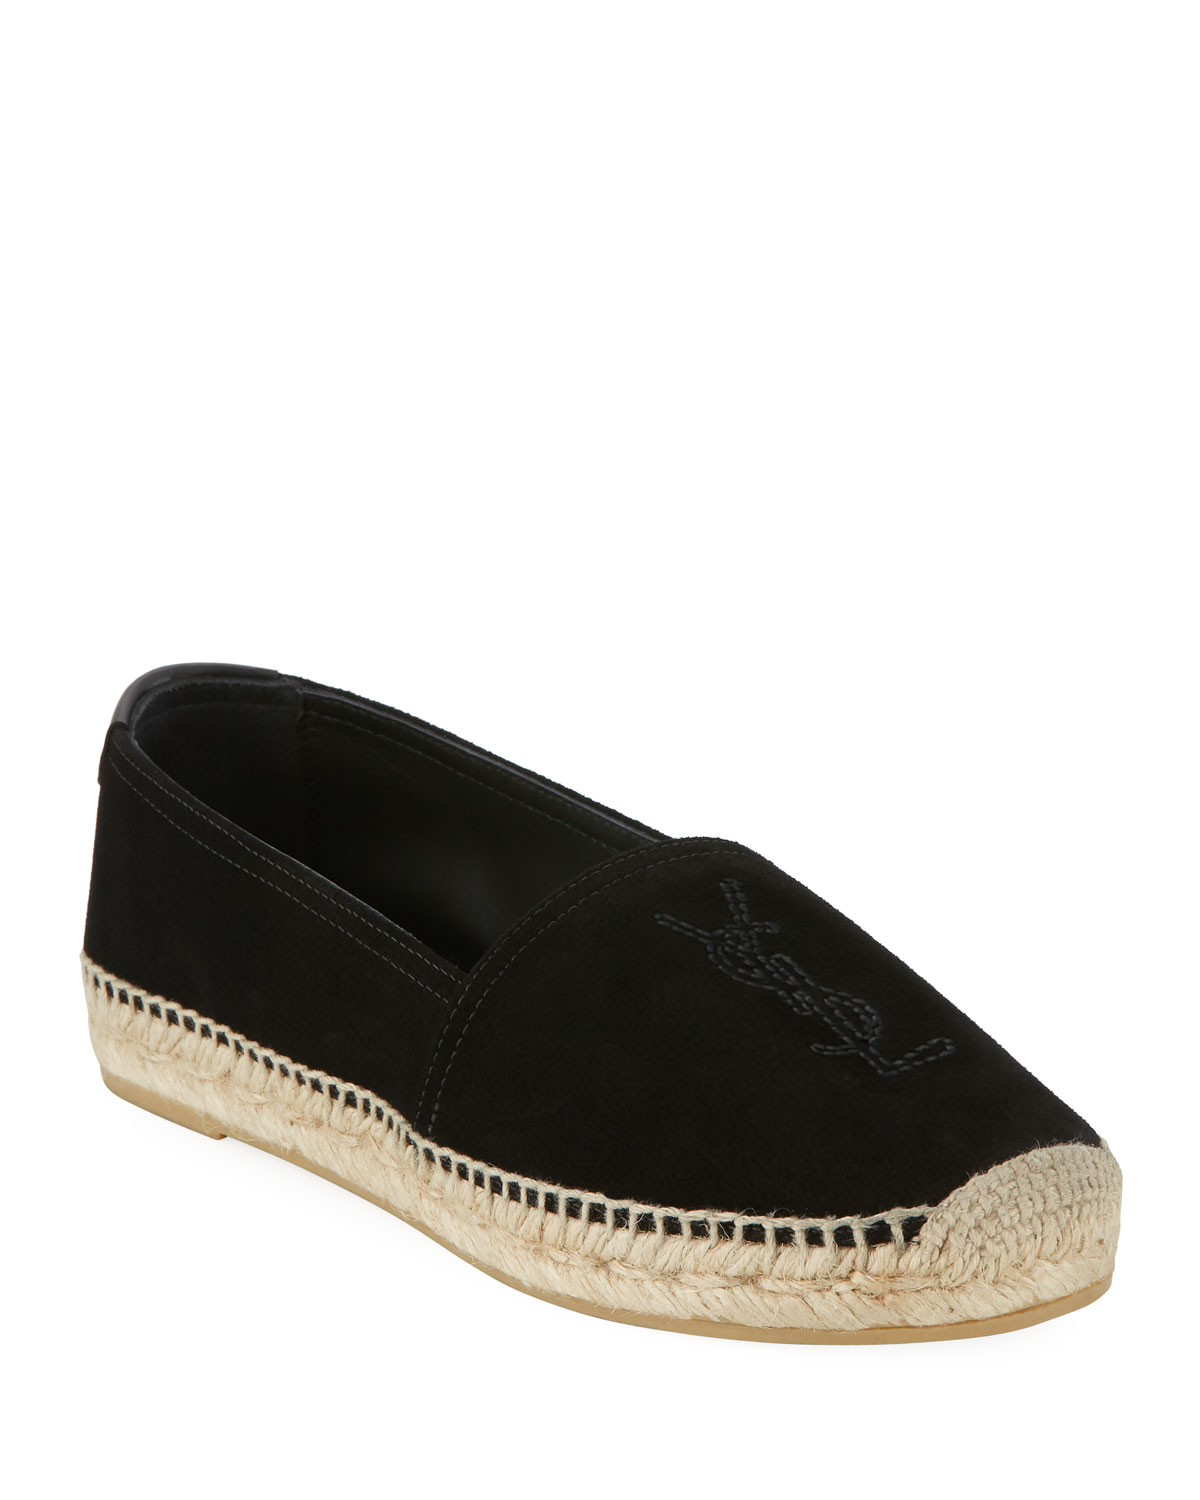 fa17943b8e9d Saint Laurent Monogram YSL Soho Suede Slip-On Espadrille Flat ...